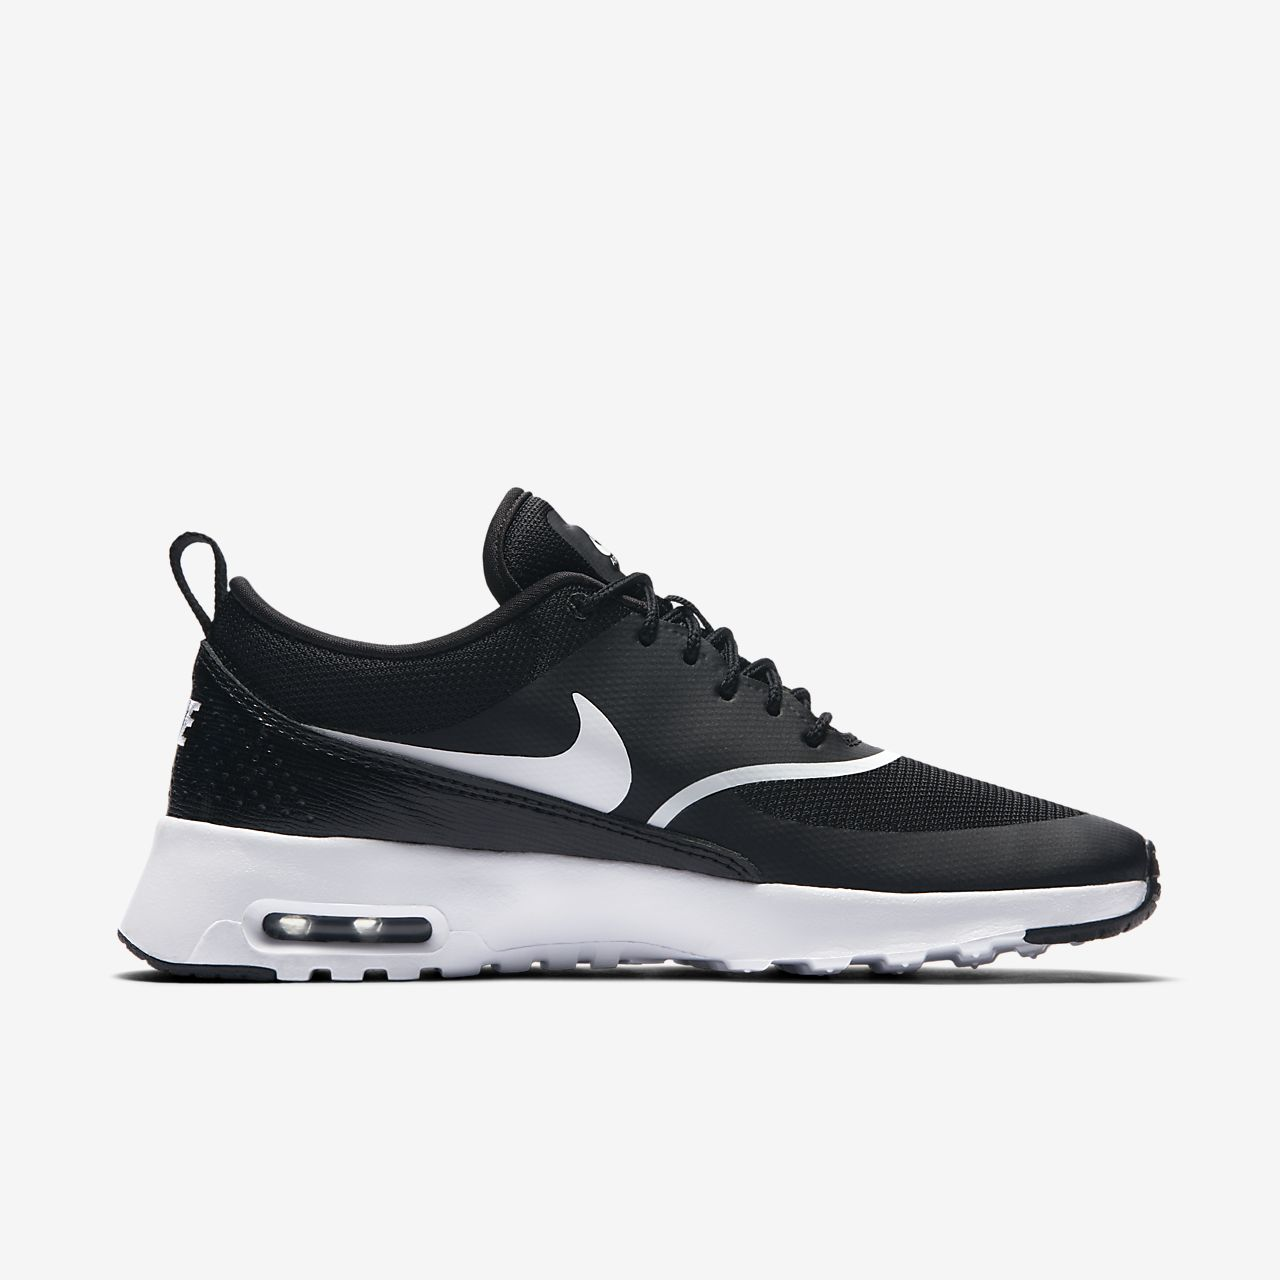 835fb497c28e8 Nike Air Max Thea Women s Shoe. Nike.com CA